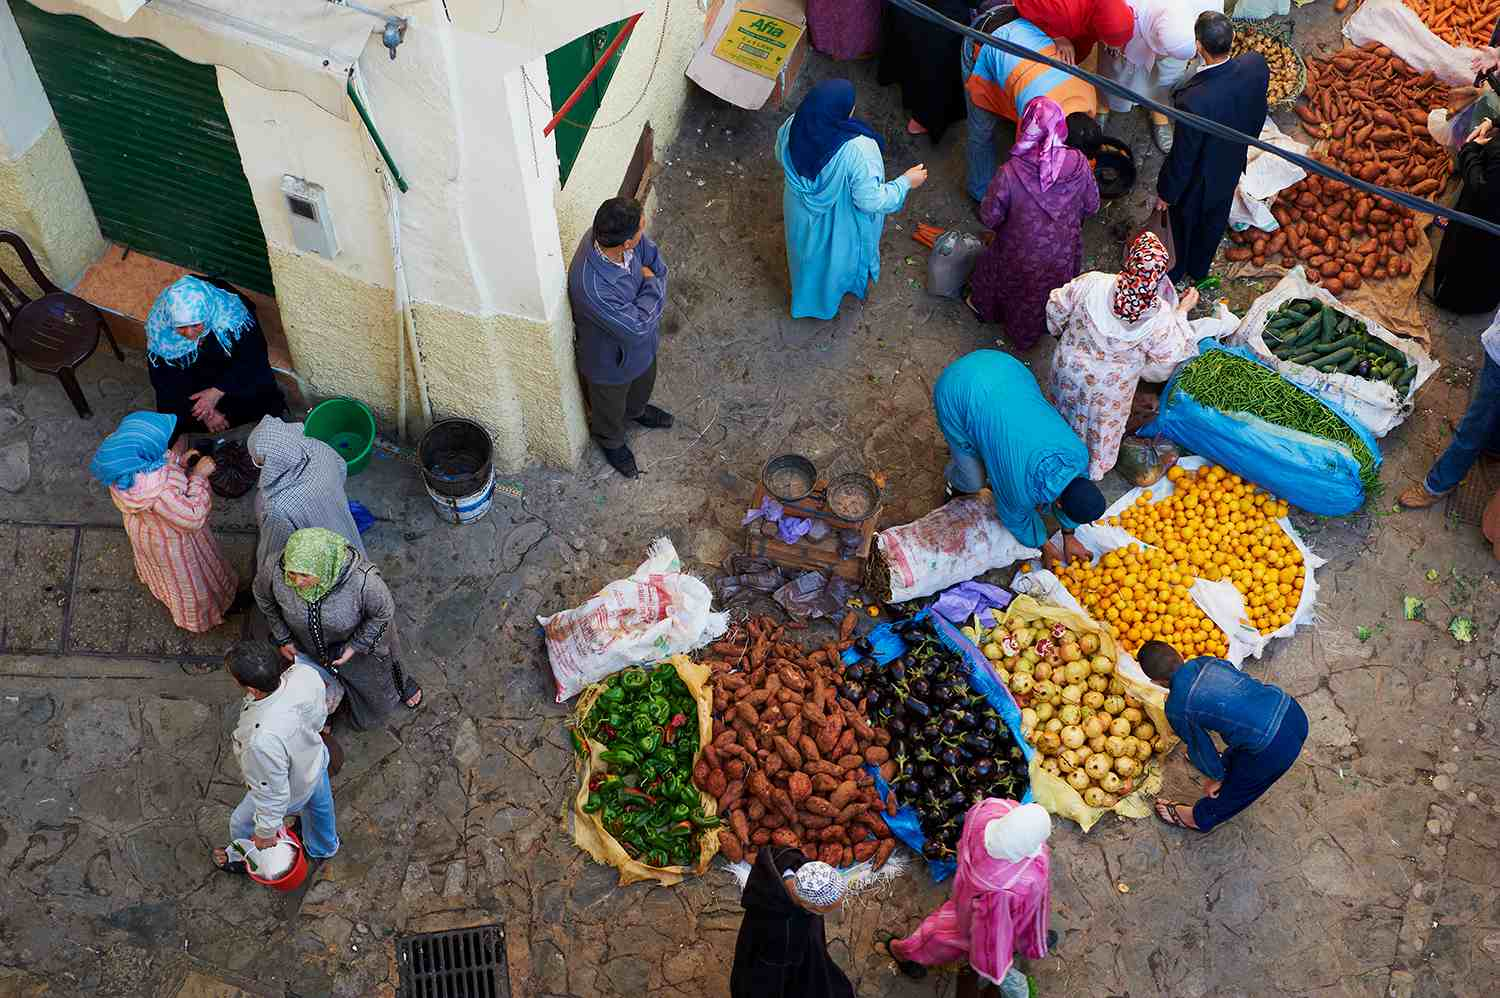 Morocco, Tangier (Tanger), Thursday and Sunday market on the old city.